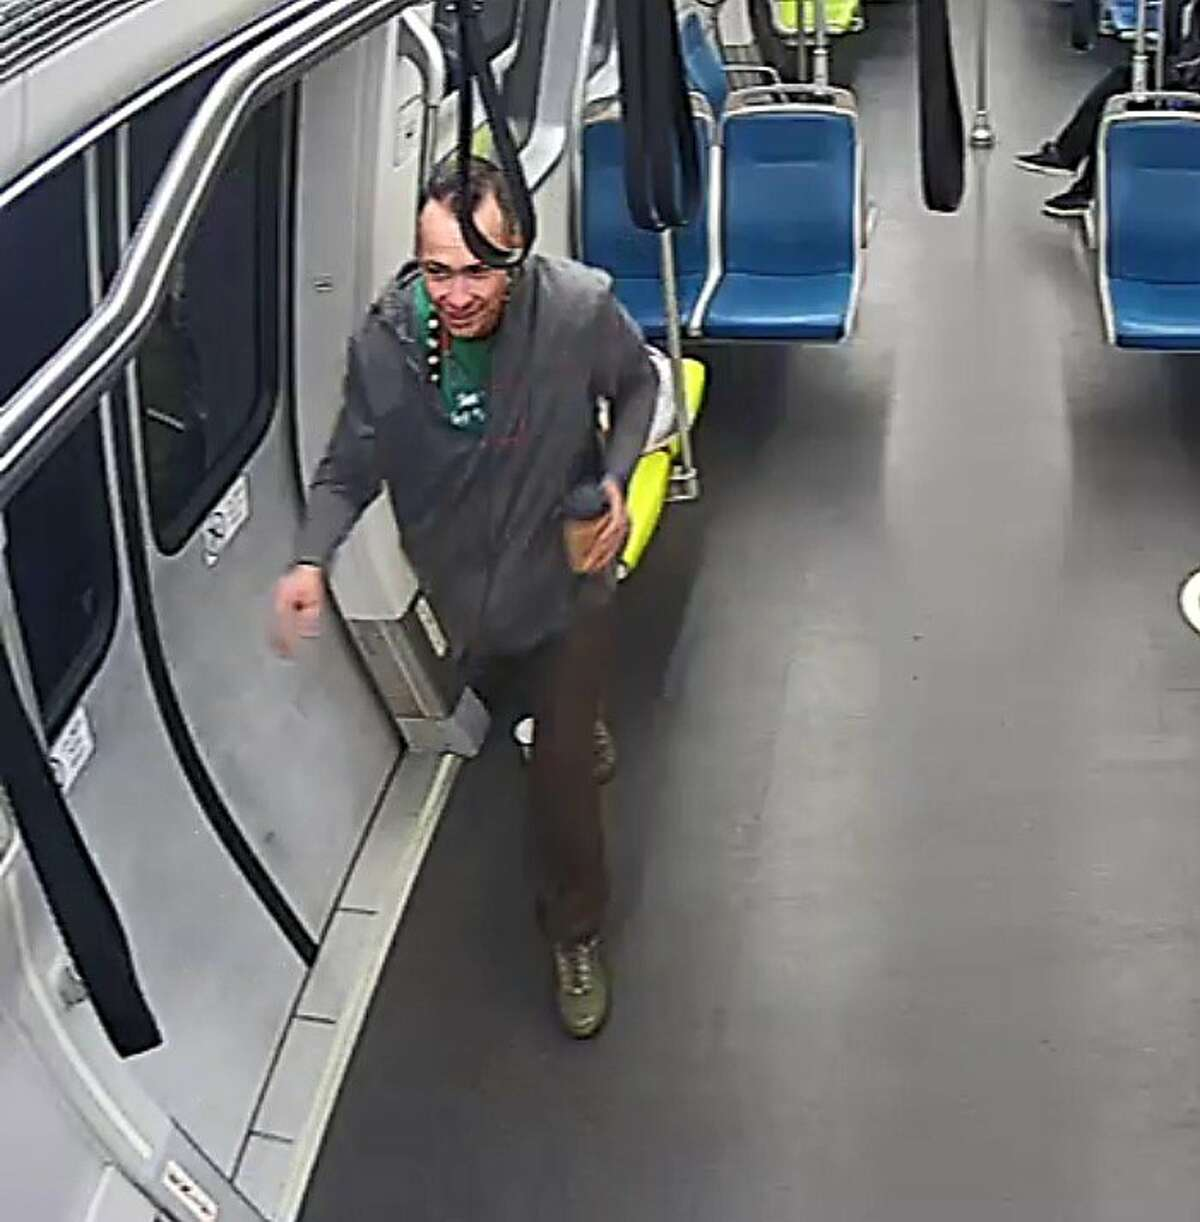 BART police released photos Thursday of the man suspected of beating a traveler with a chain in an unprovoked attack aboard aDaly City-boundtrain on Tuesday,February 11, 2020.